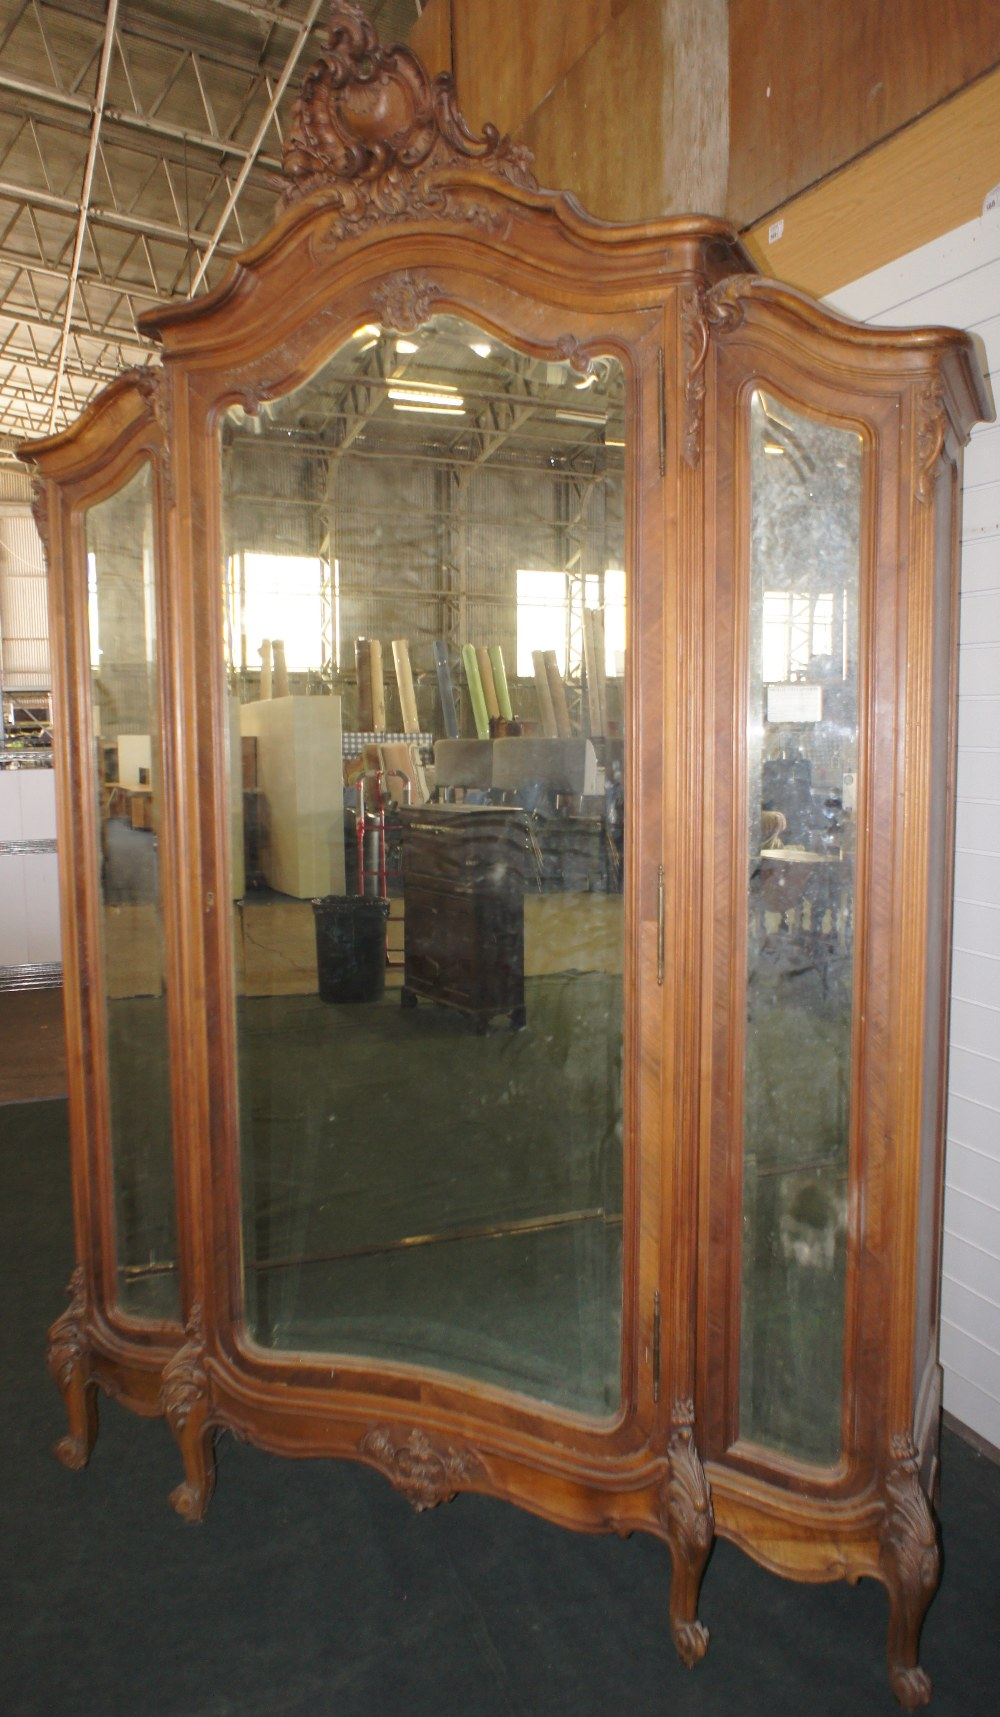 Lot 609 - NV- A highly decorative carved mahogany French style armoire/wardrobe with a mirrored door and two